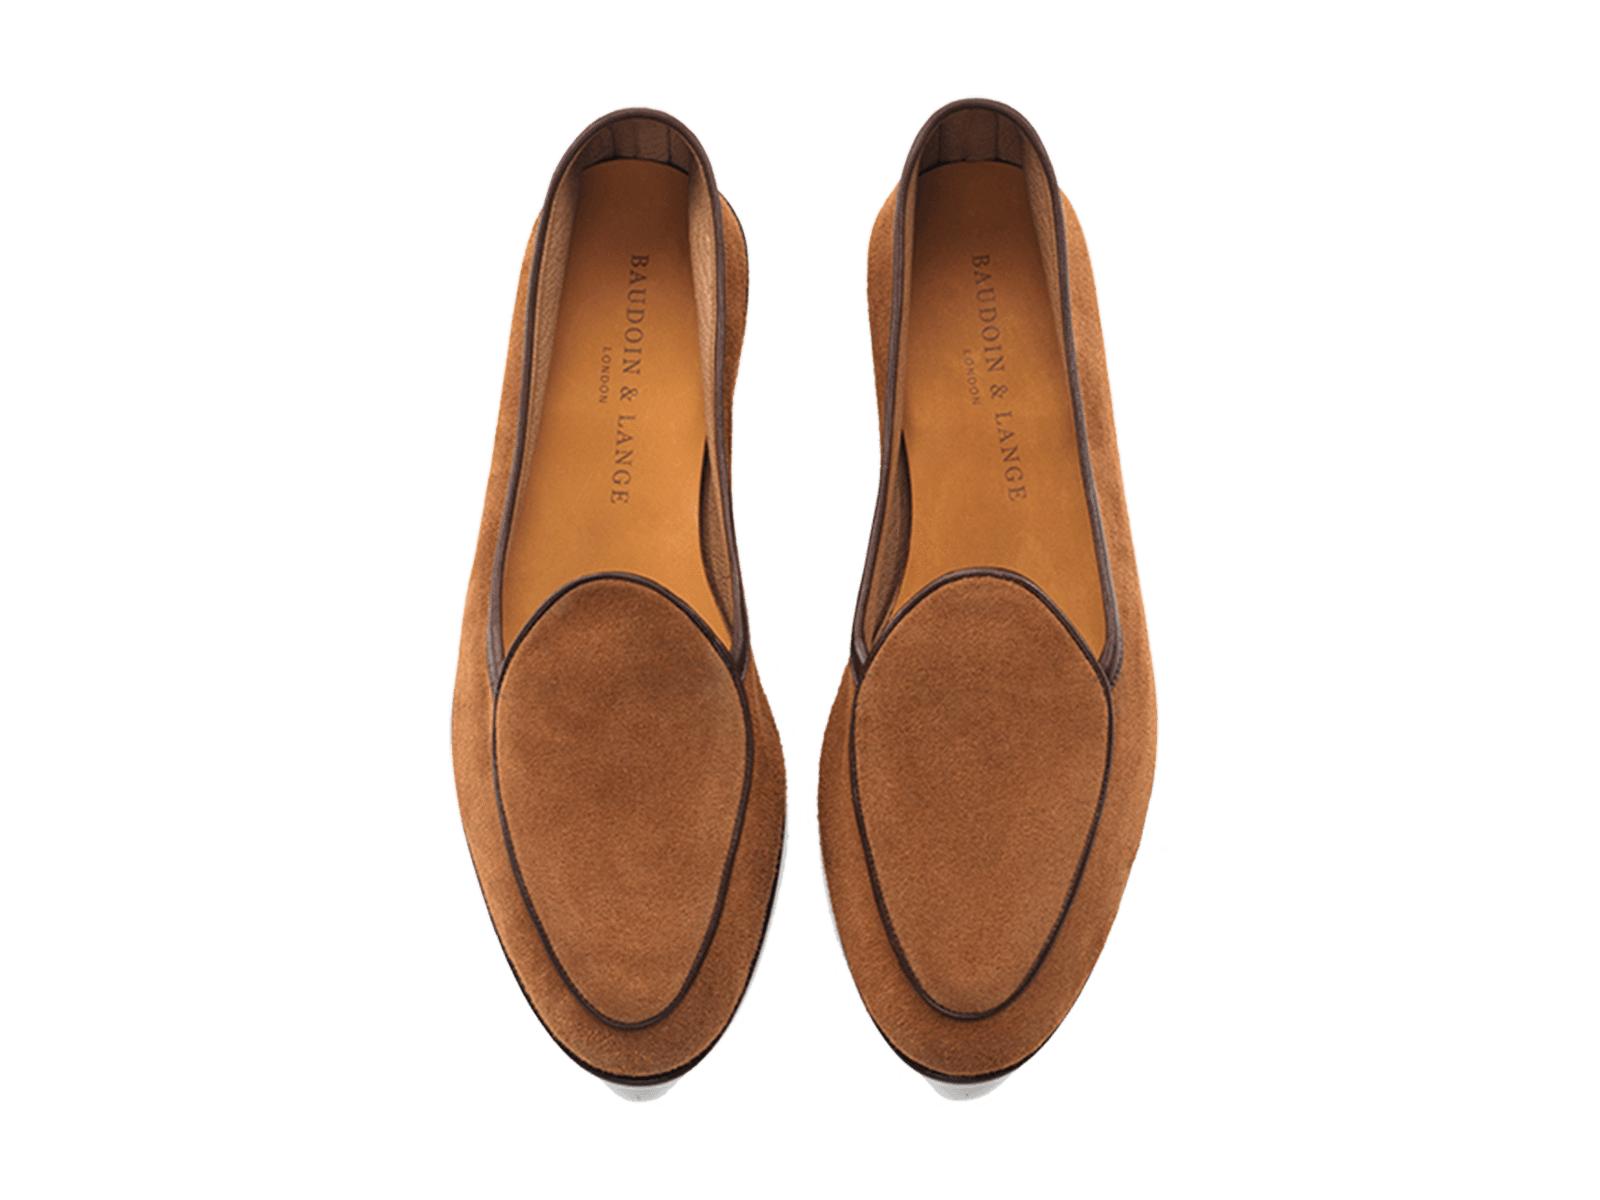 Sagan Classic Plain in Tobacco Asteria Suede